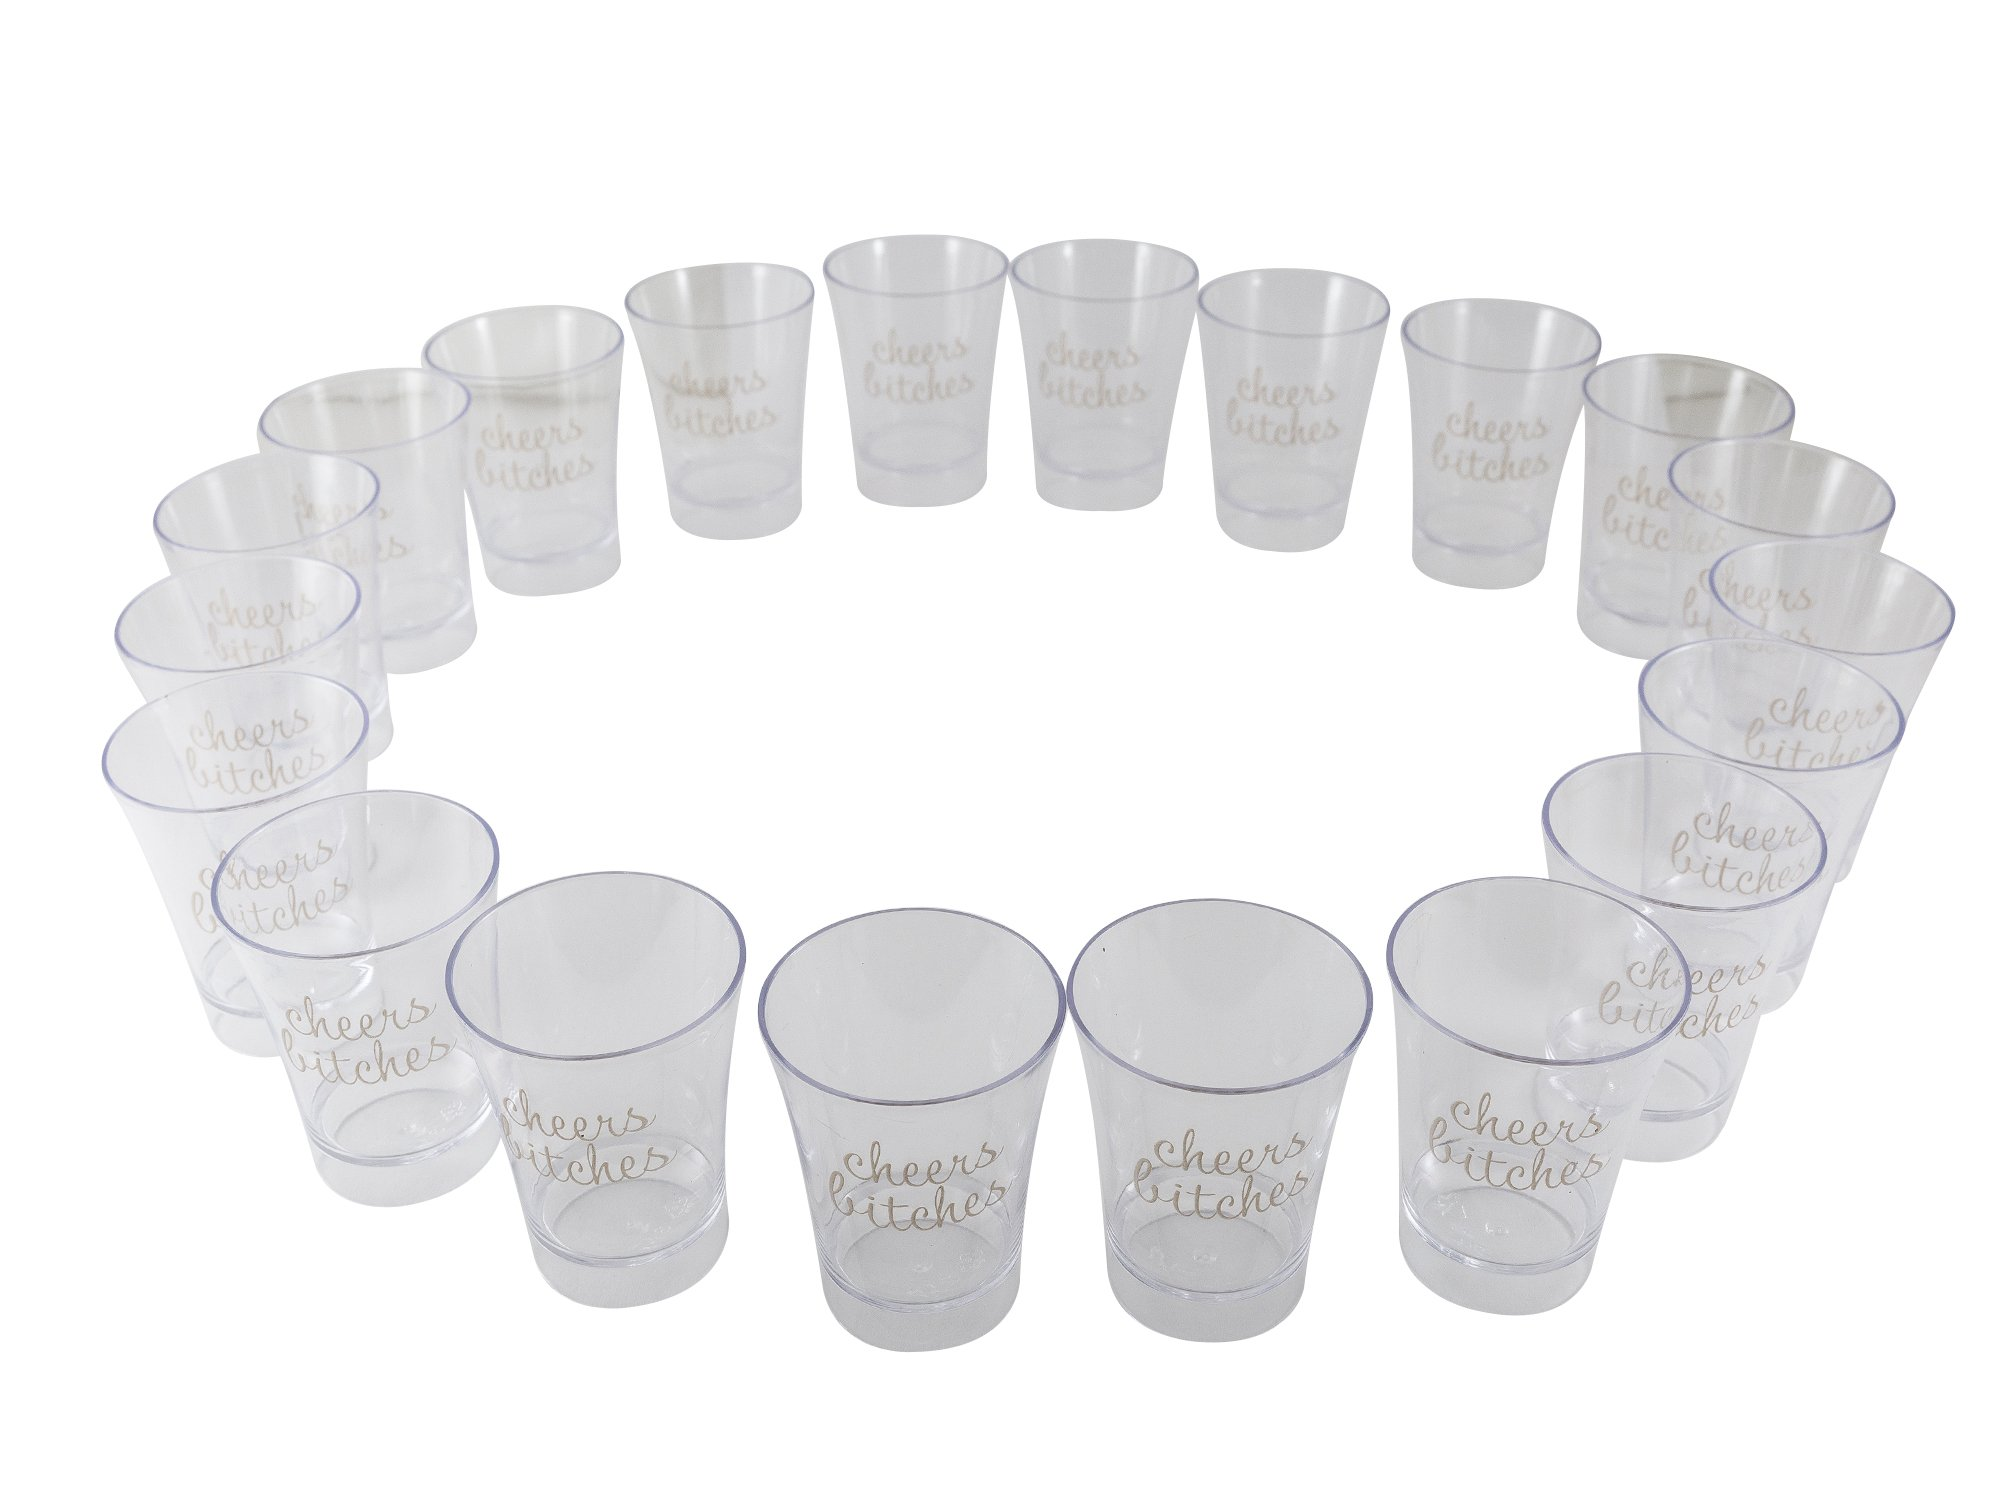 Party Shot Glasses for Bachelorettes and Birthdays, Cheers Bitches 2 oz Plastic Shooters (20 Pack) by WeParty